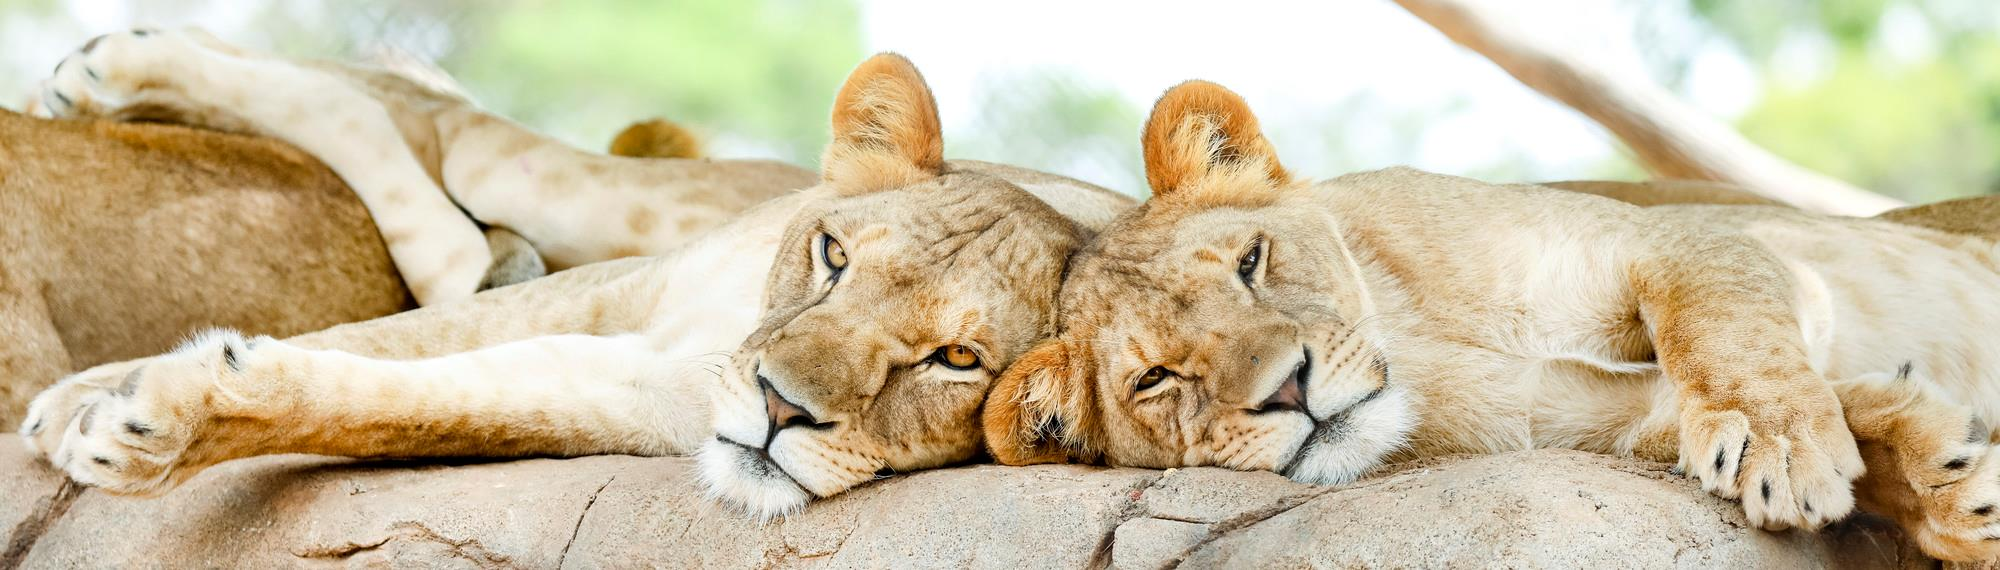 Two sleepy looking lion cubs laying with their heads together while sunning themselves on a rock.